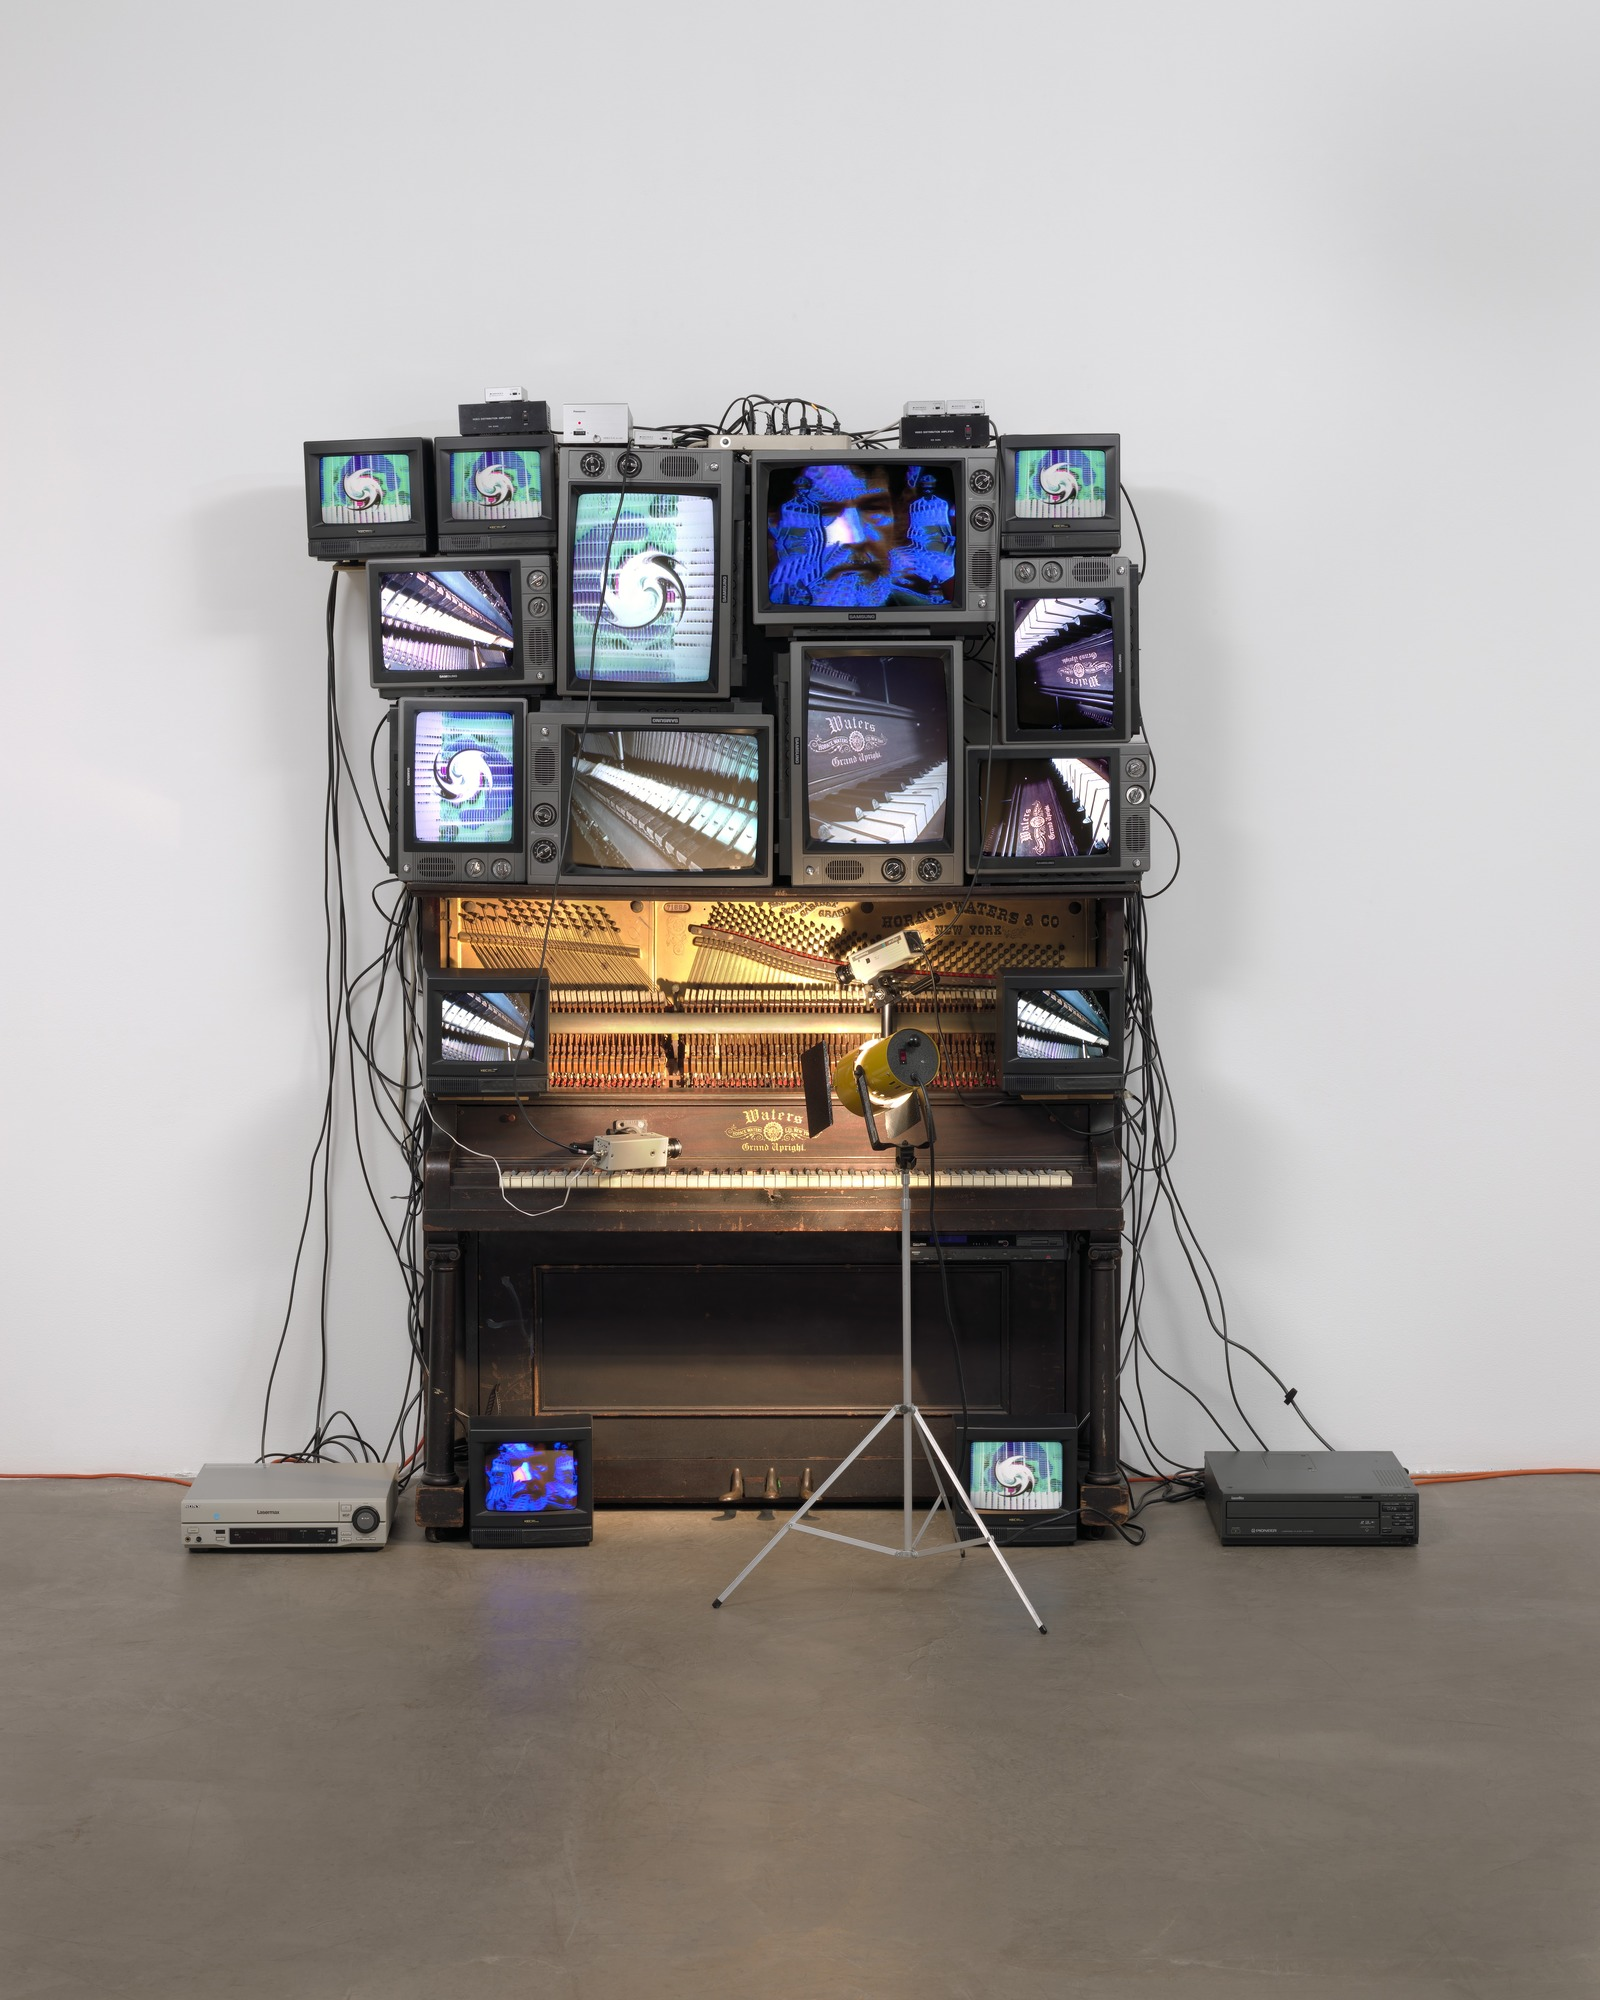 Photograph of an installation made of Player piano, fifteen televisions, two cameras, two laser disc players, one electric light and light bulb, and wires.